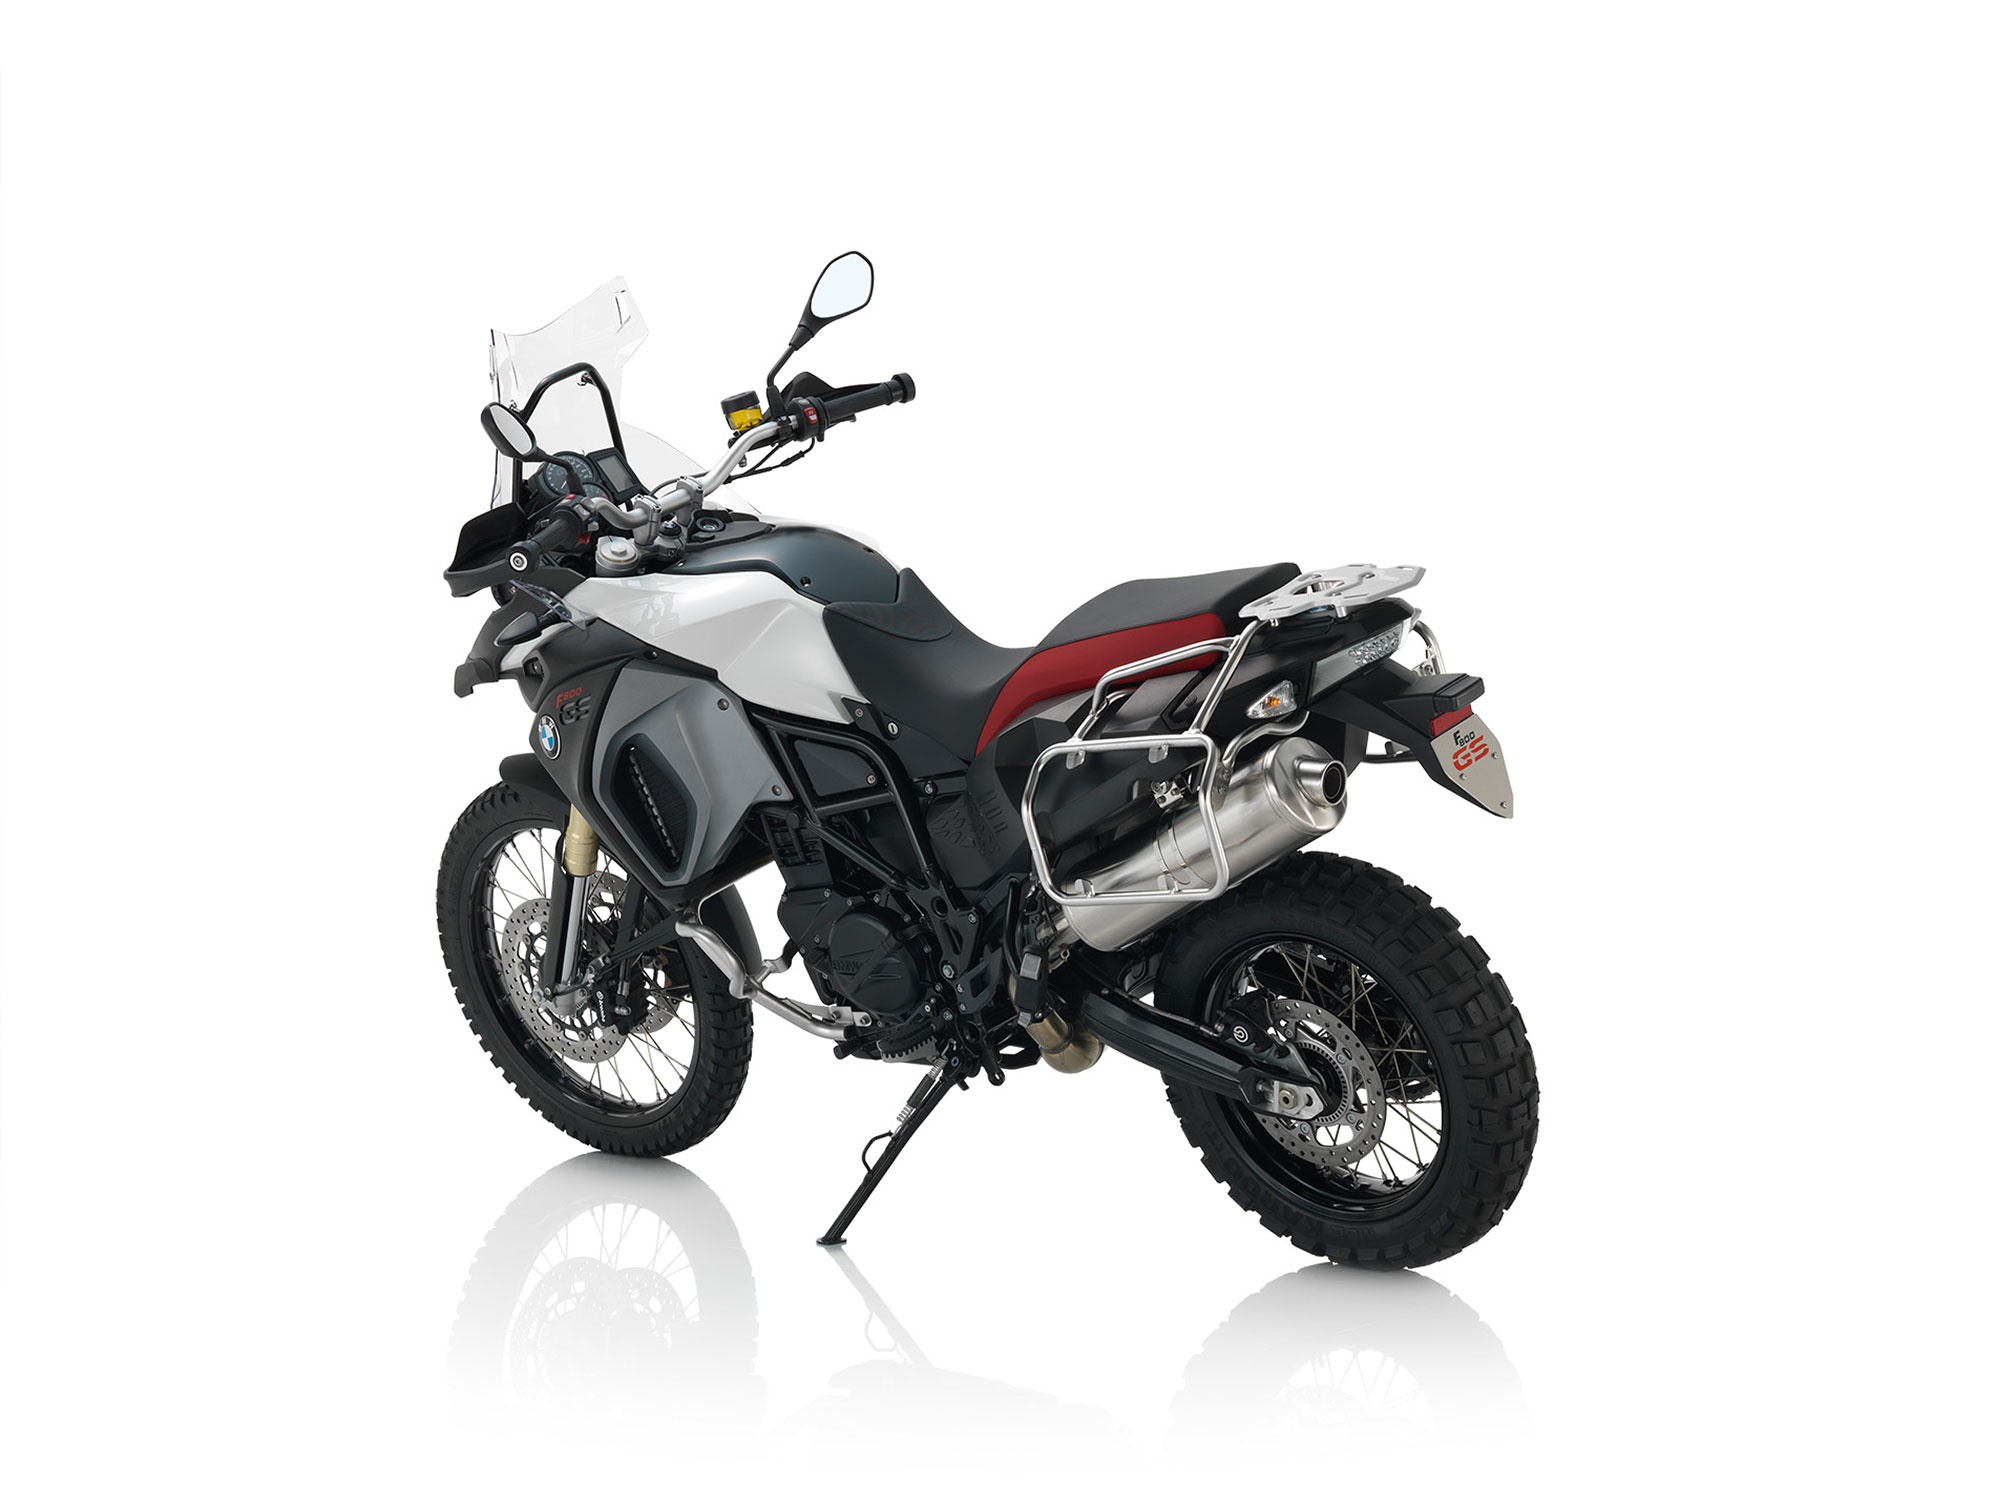 2016 BMW F800GS Adventure Review